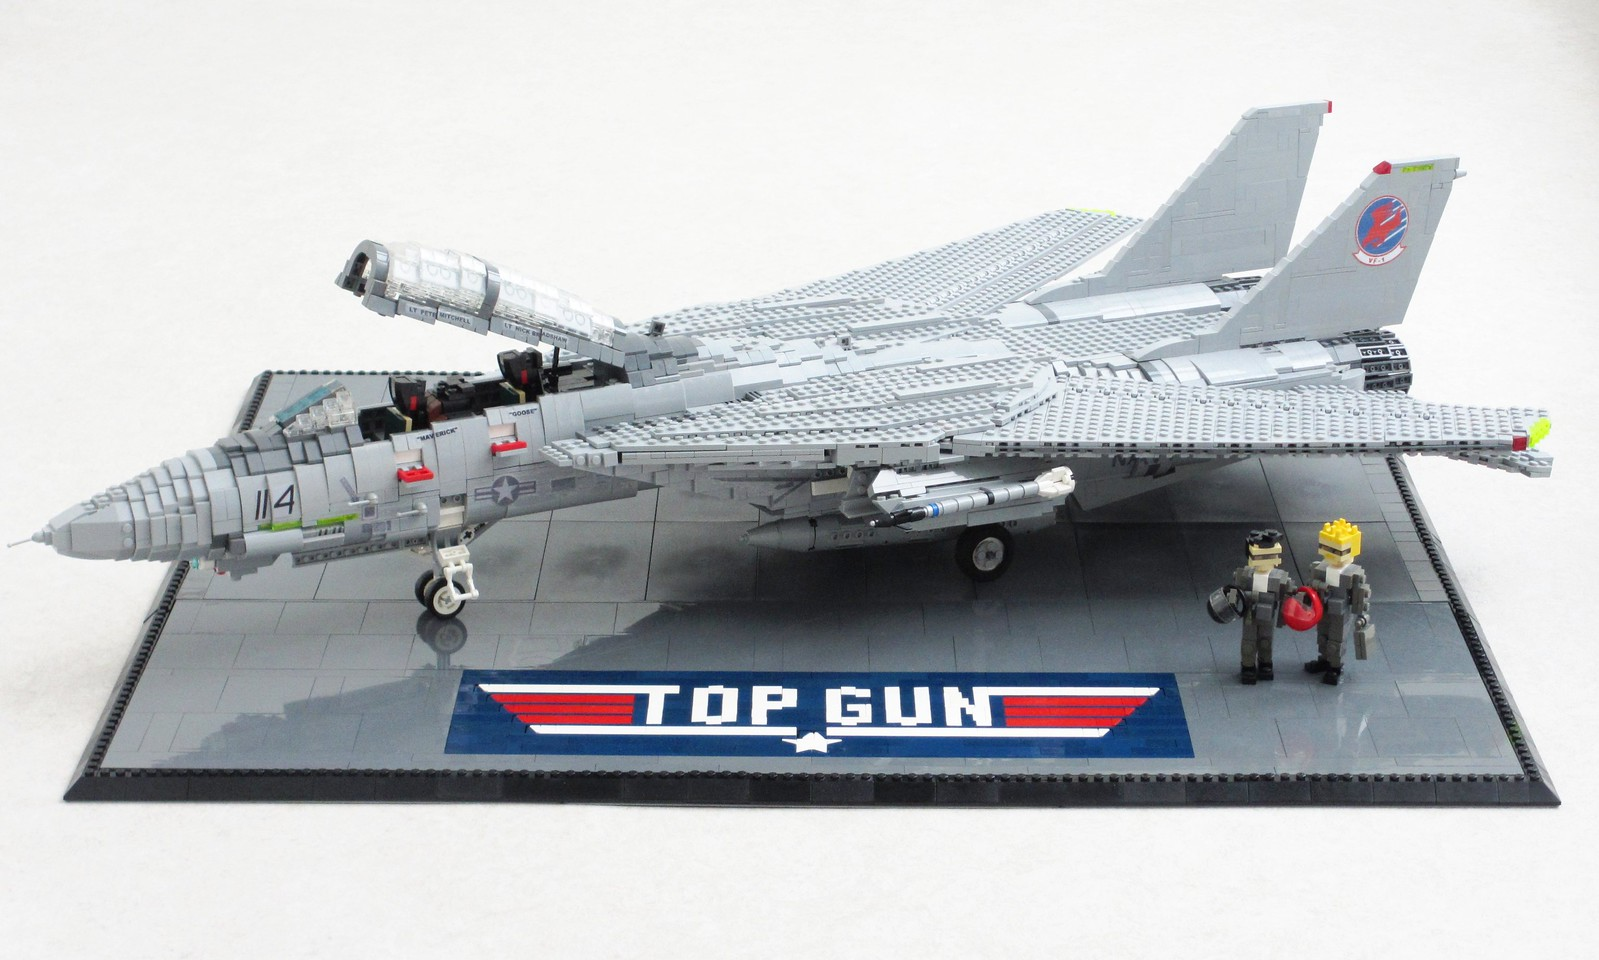 Top Gun display